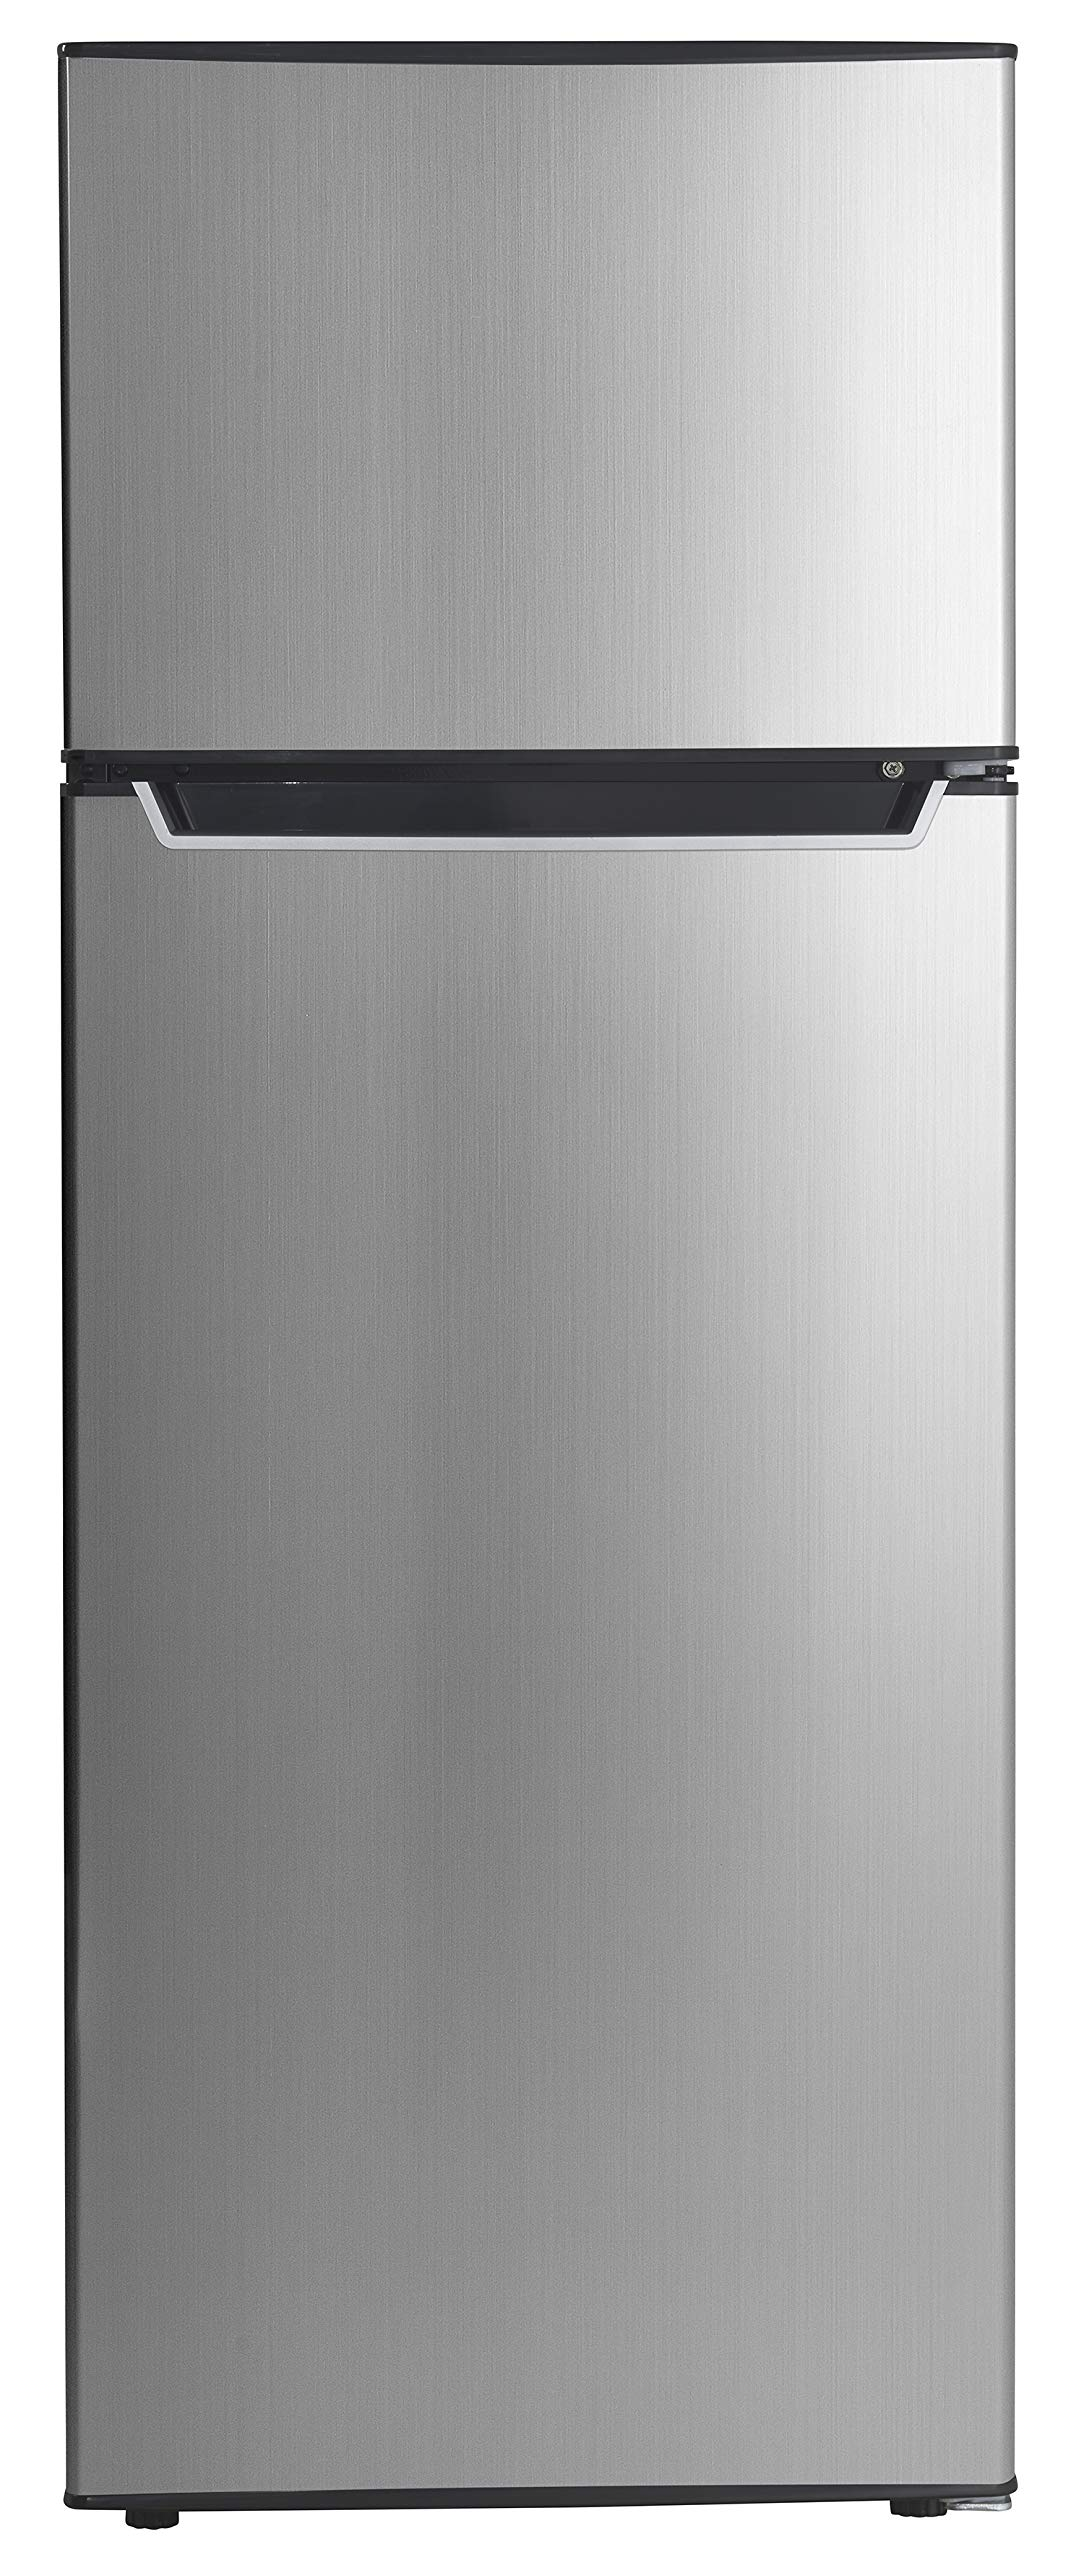 Danby Energy Star 7.3-Cu. Ft. Apartment Size Refrigerator with Top-Mount Freezer in Spotless Steel/Black by Danby